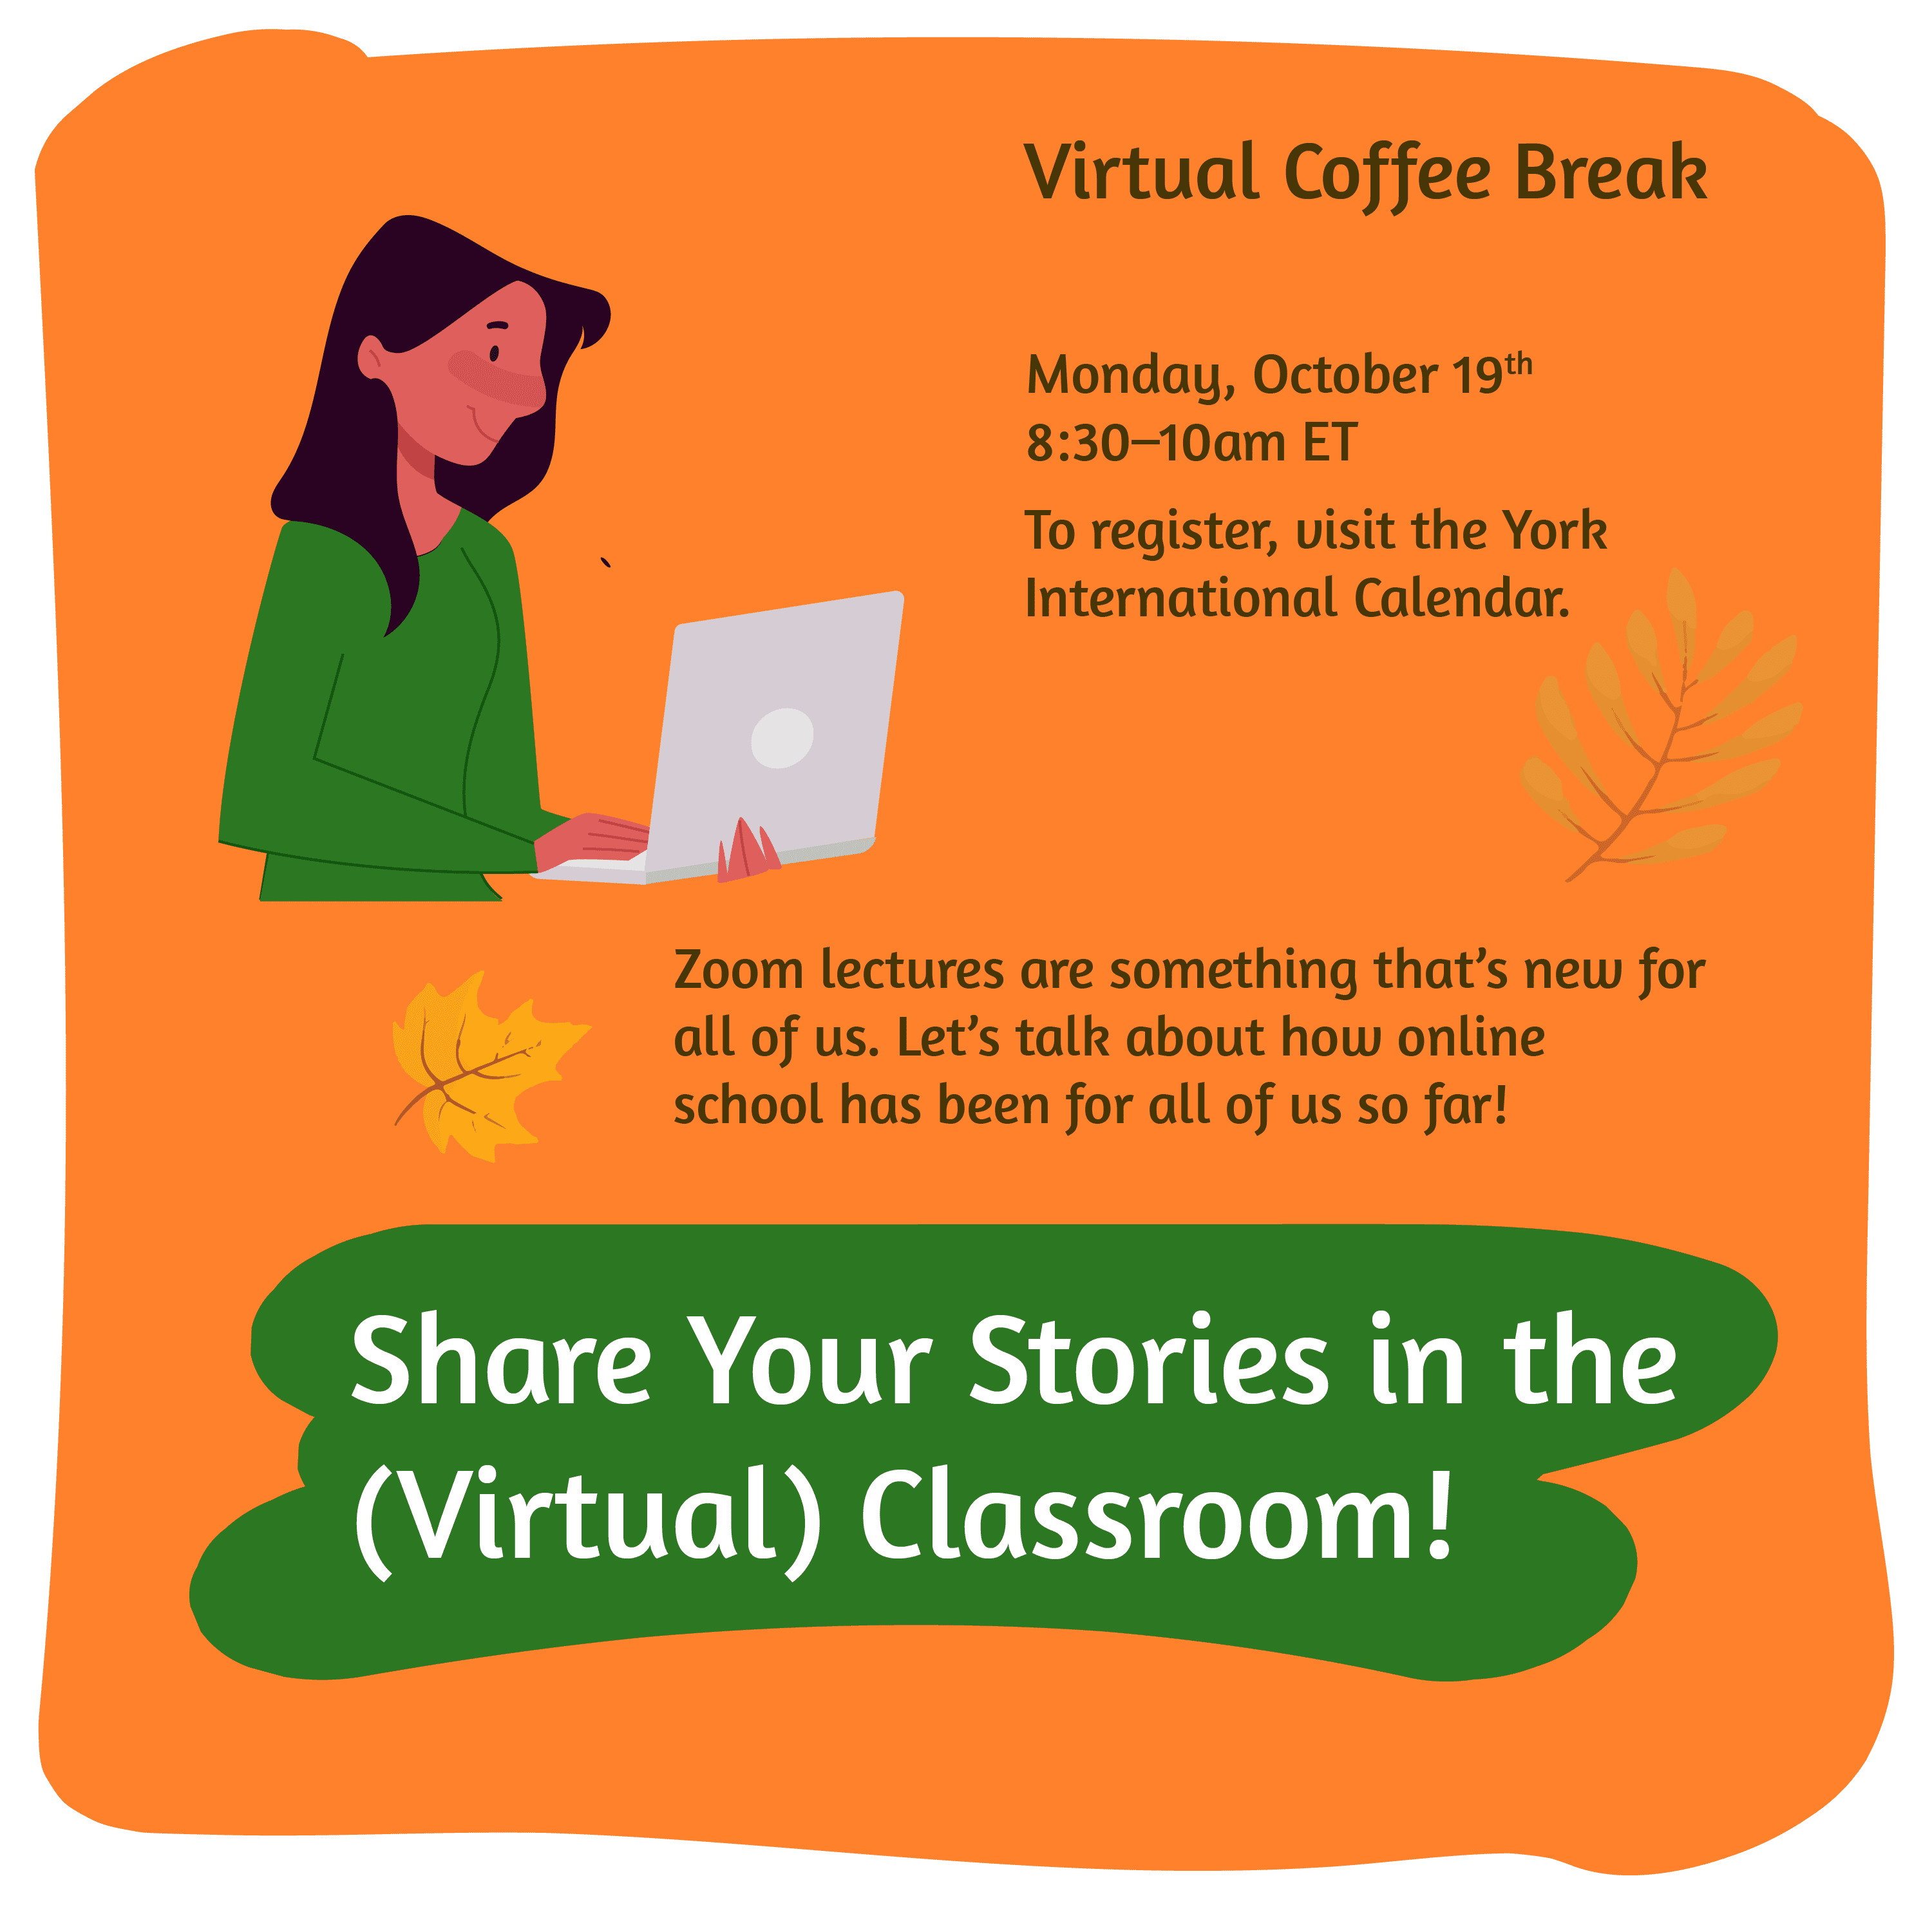 Virtual Coffee Break - Share your stories in the (virtual) classroom @ Zoom